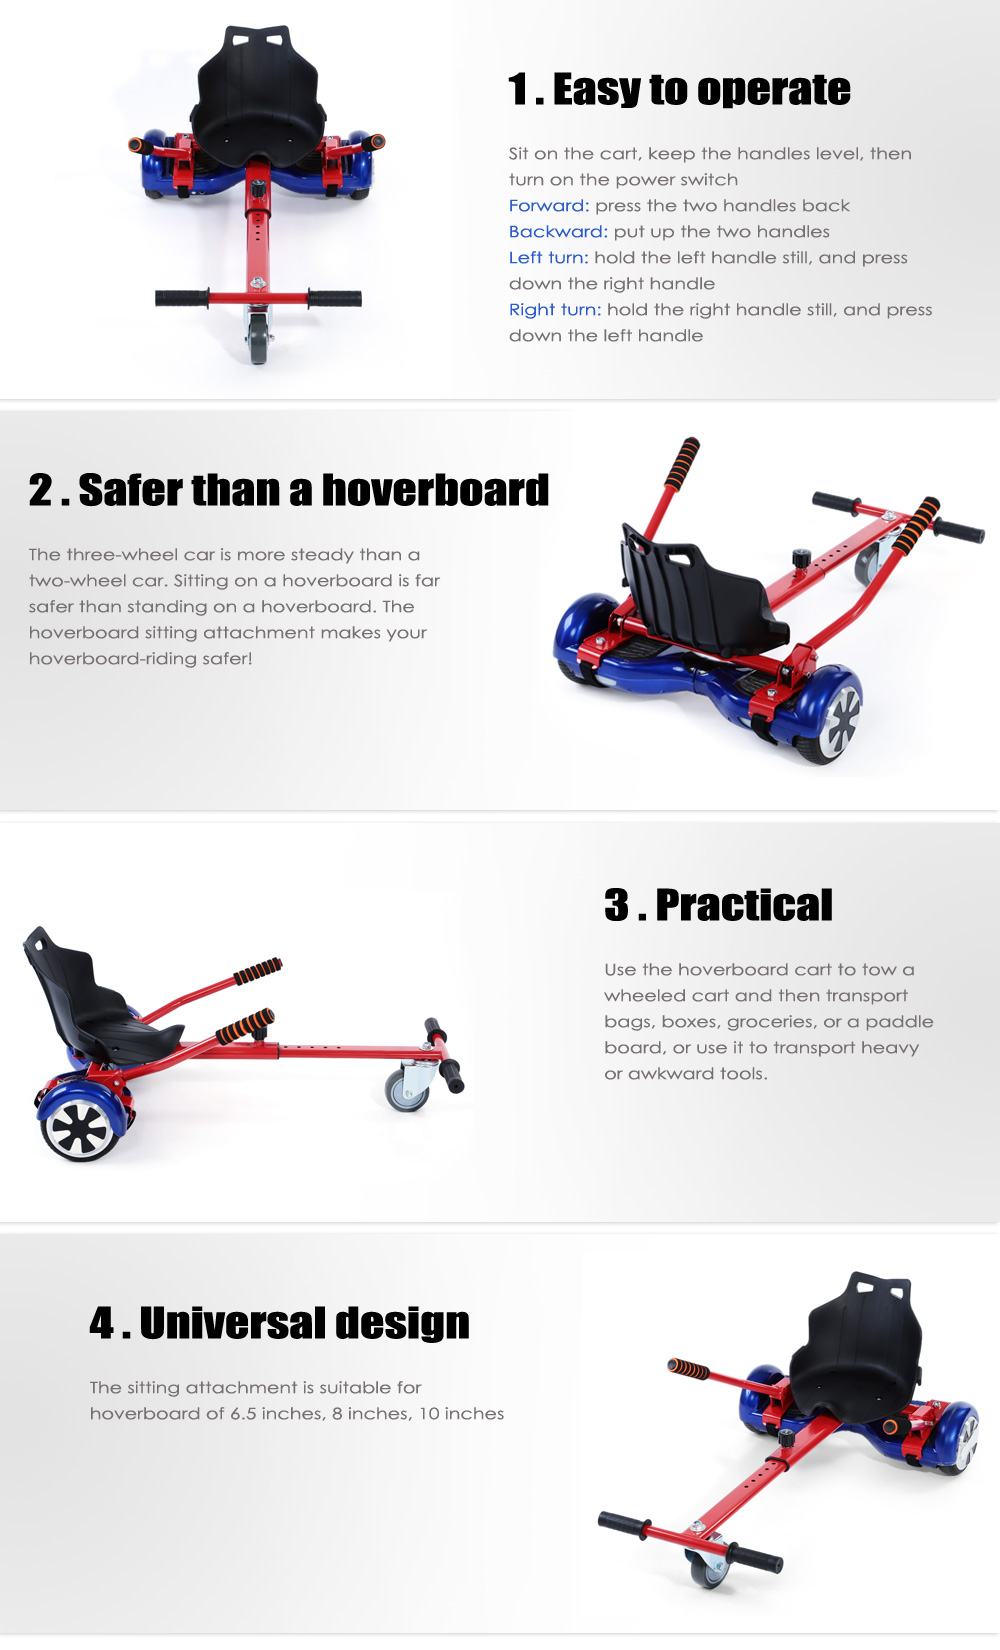 Hoverboard Kart Sitting Attachment Self Balancing Scooter Cart - Scooter Is Not Included